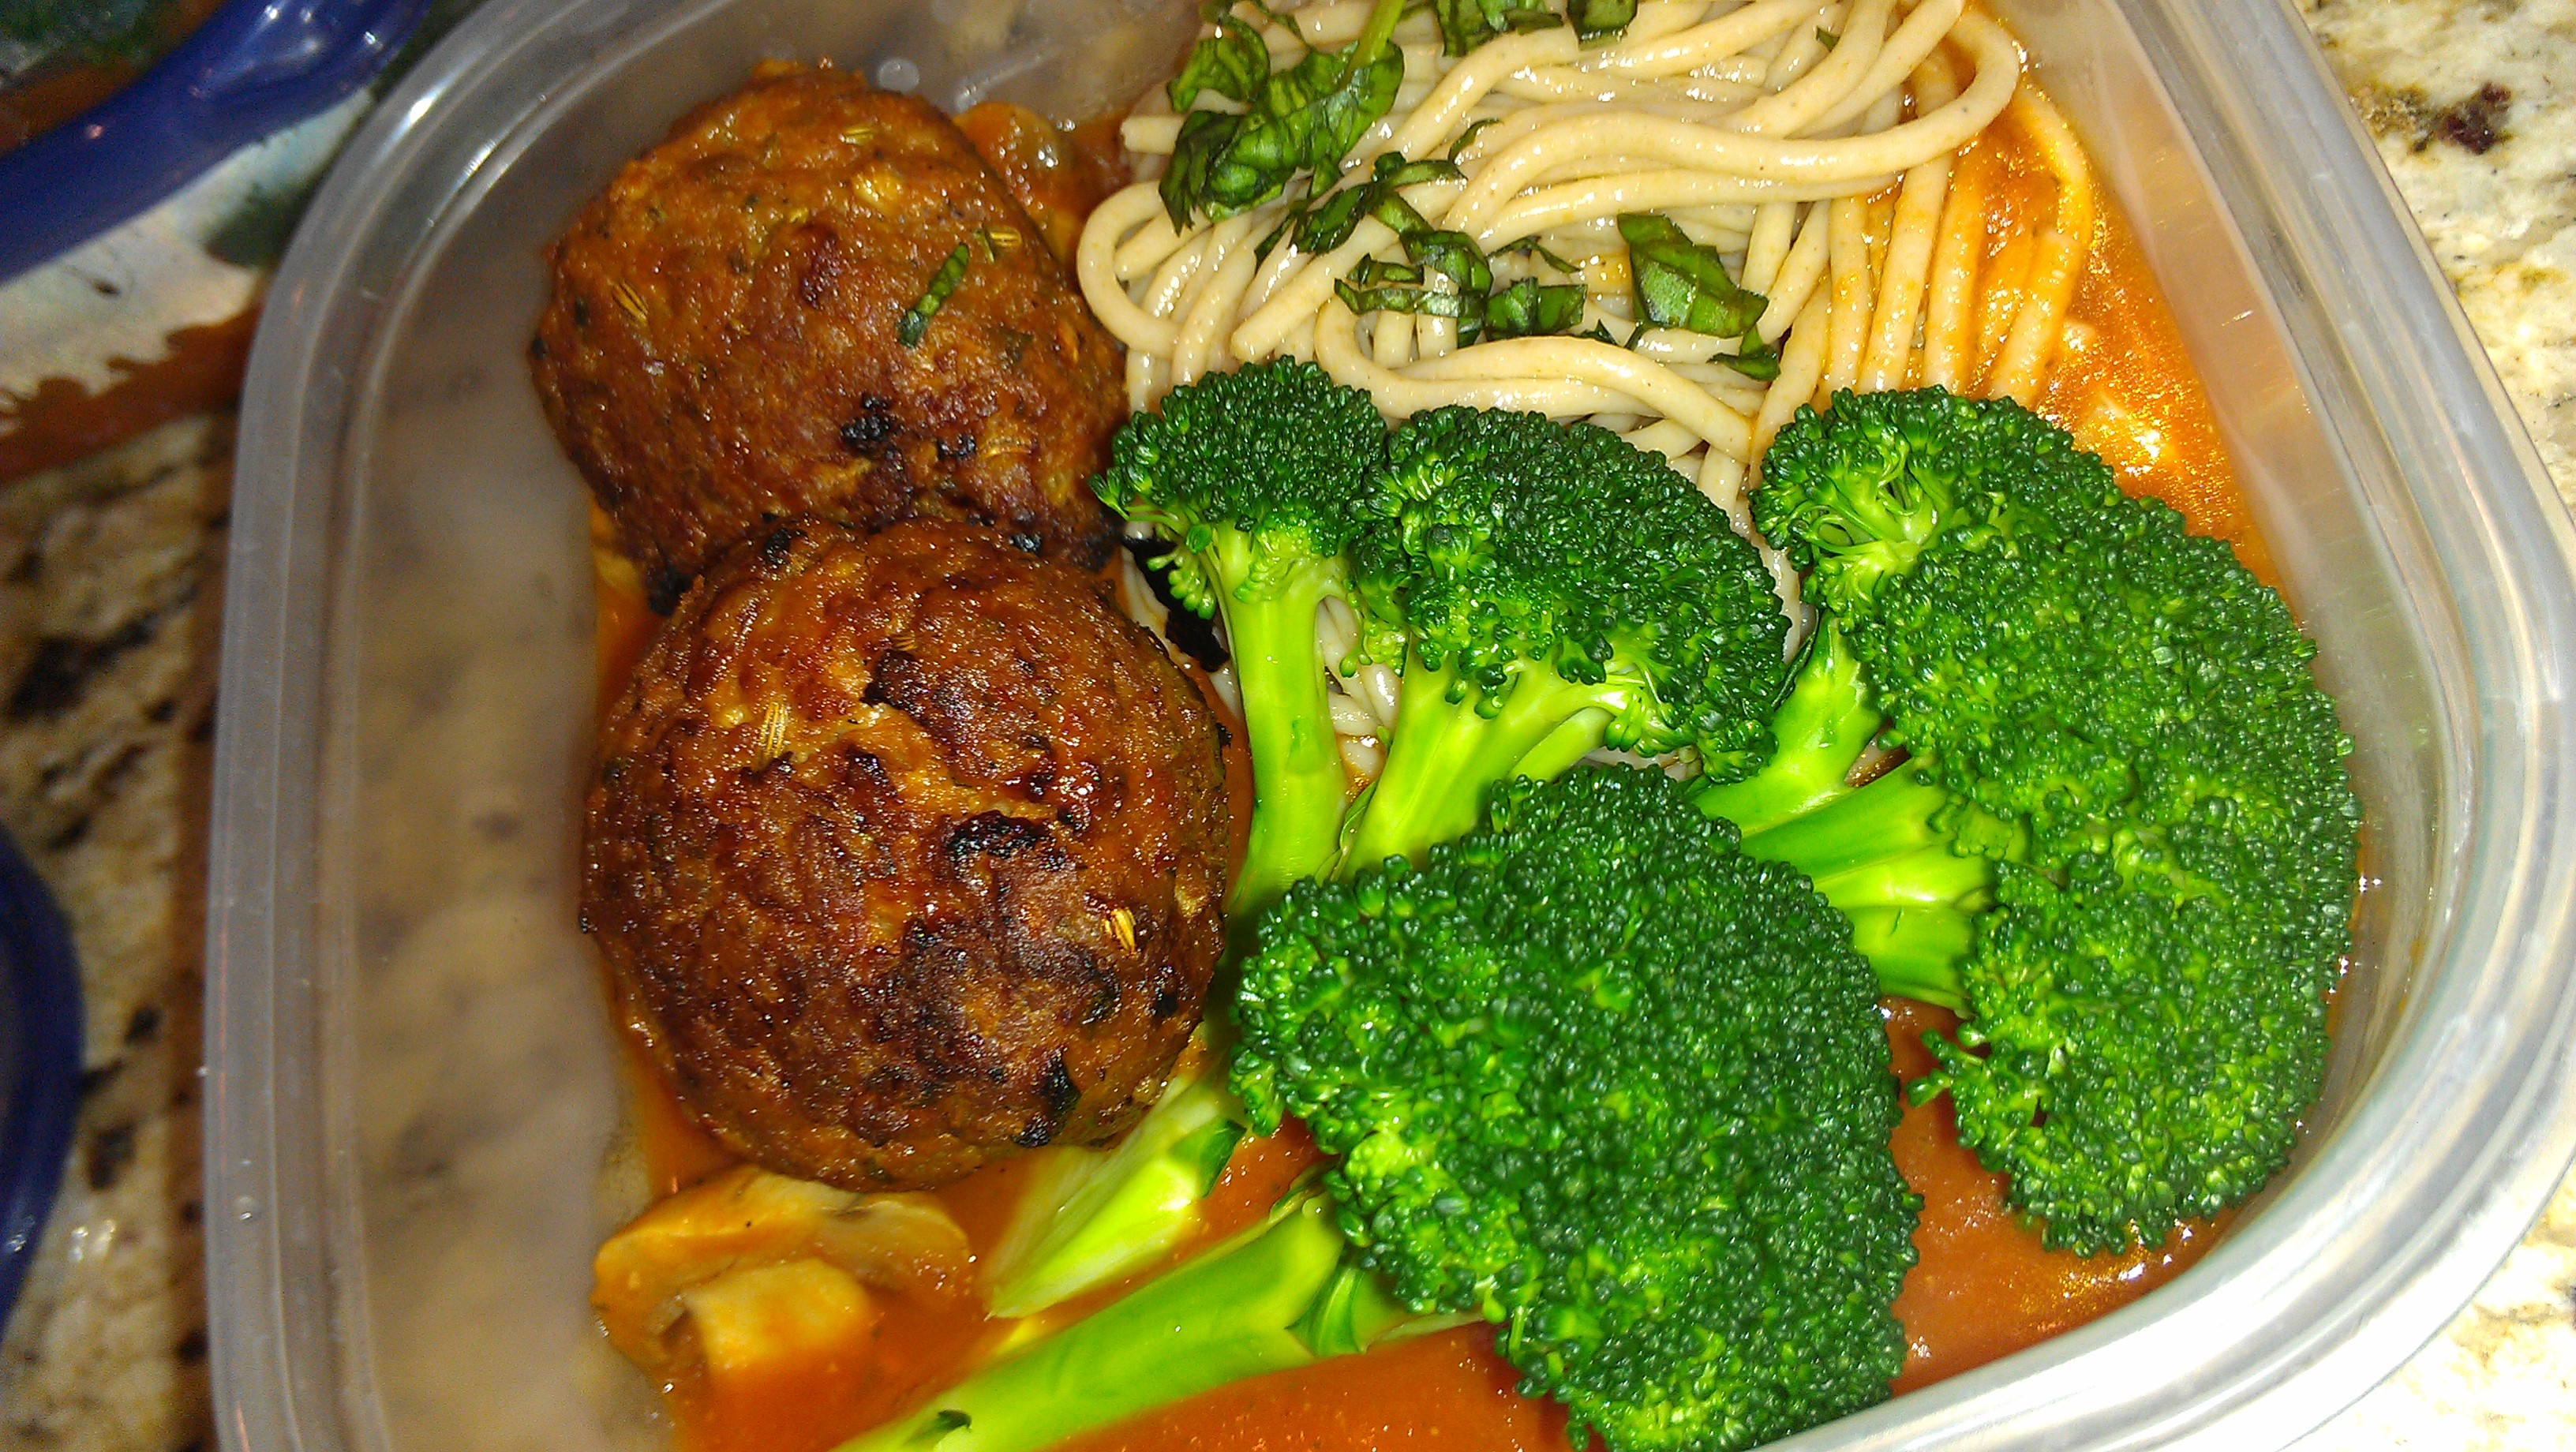 Low fat homemade meatballs pic